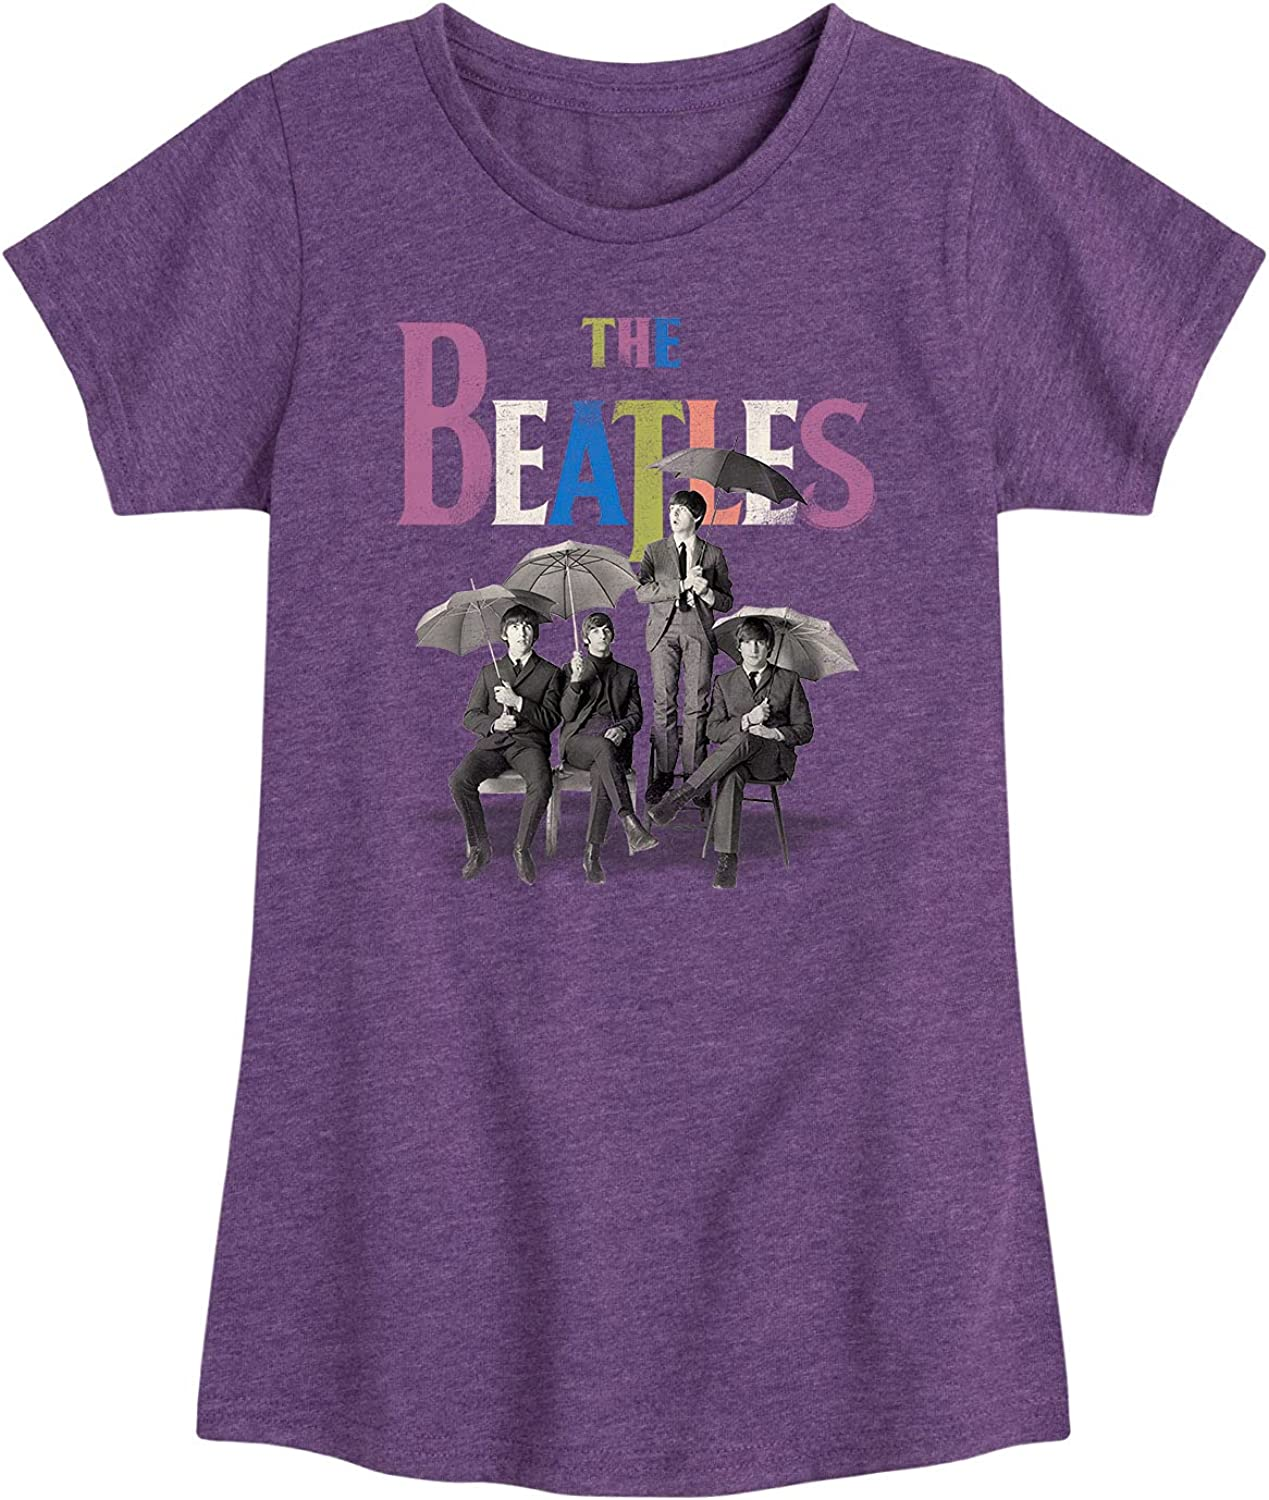 The Beatles Umbrella Rainbow - Girls Toddler and Youth Short Sleeve Graphic T-Shirt